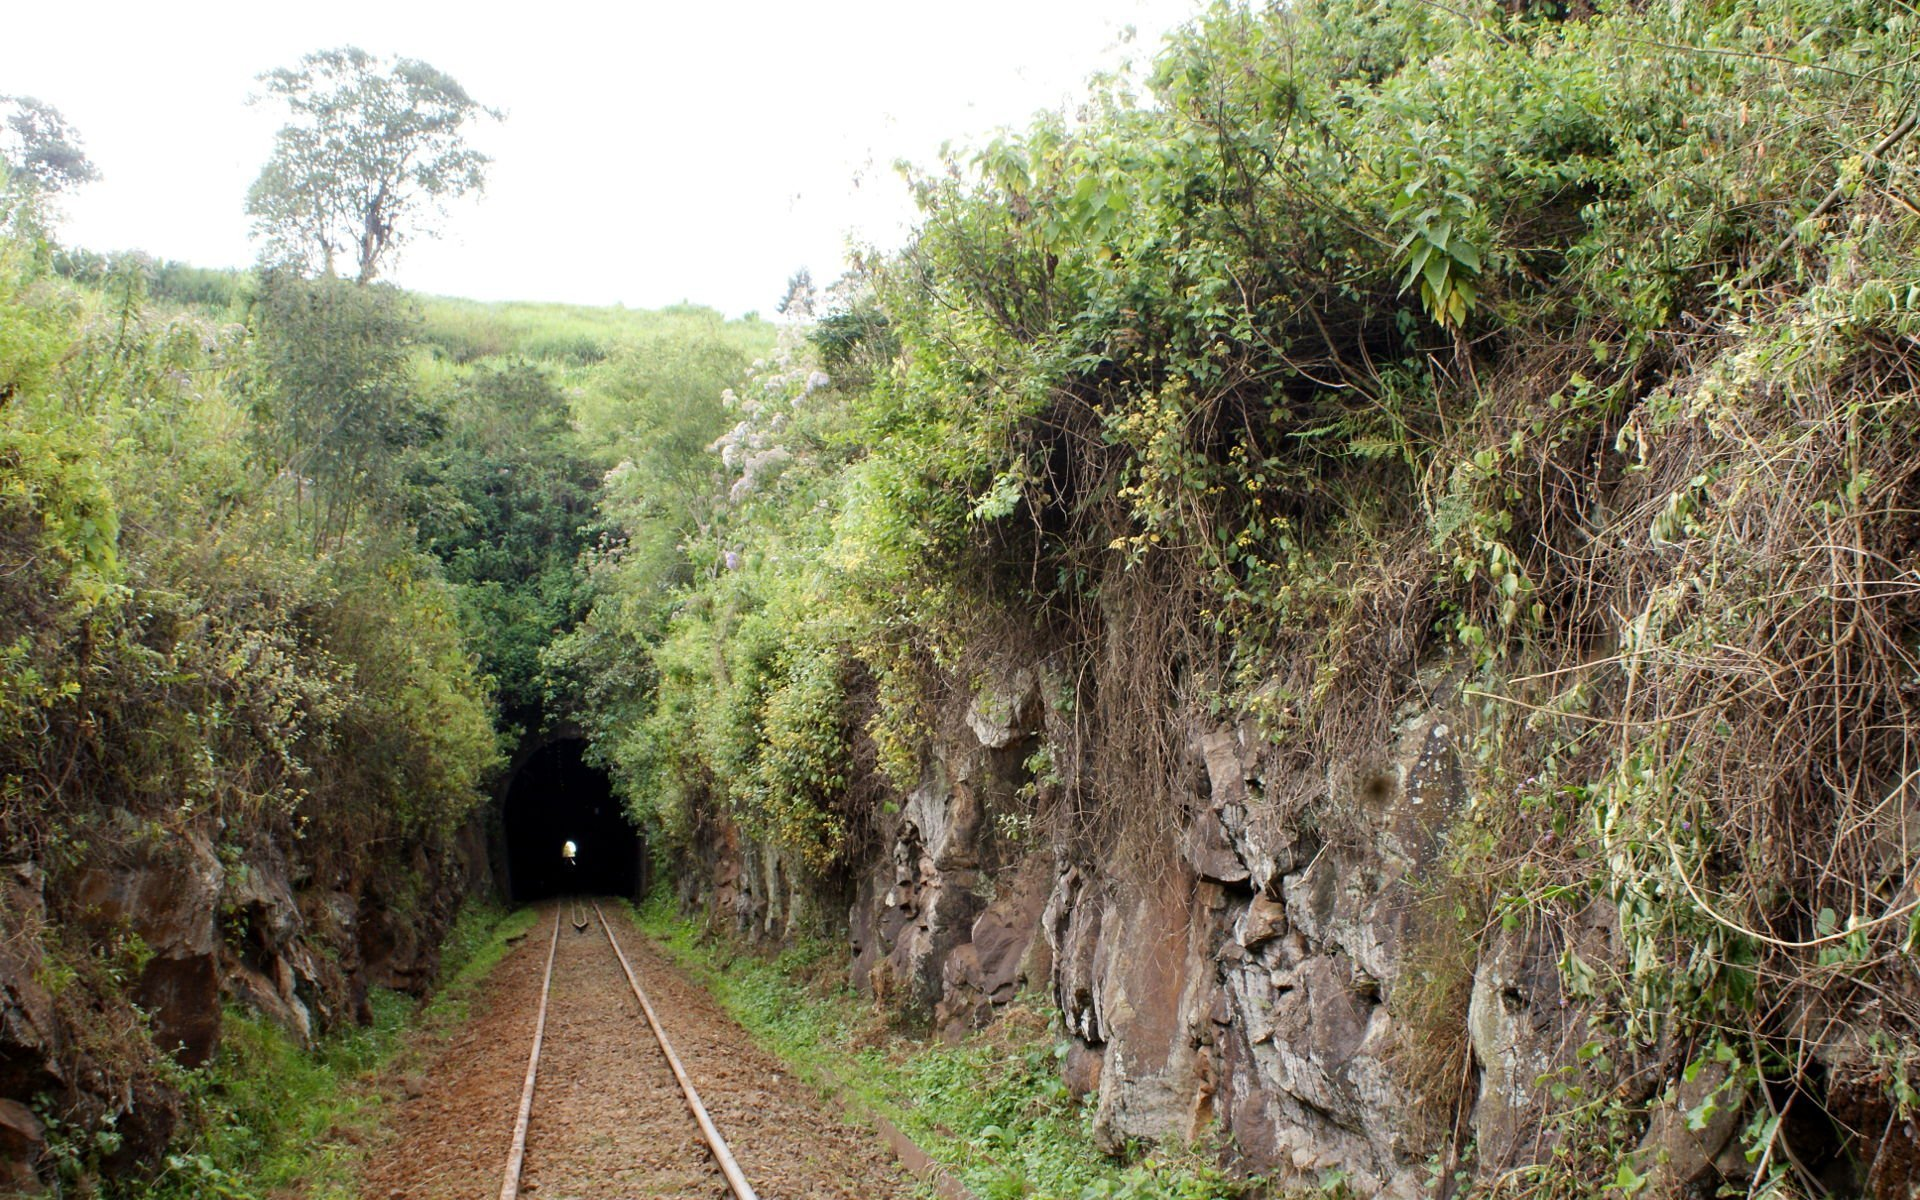 A close-up of the Buxton Tunnel in Limuru which is the longest train tunnel in Kenya.